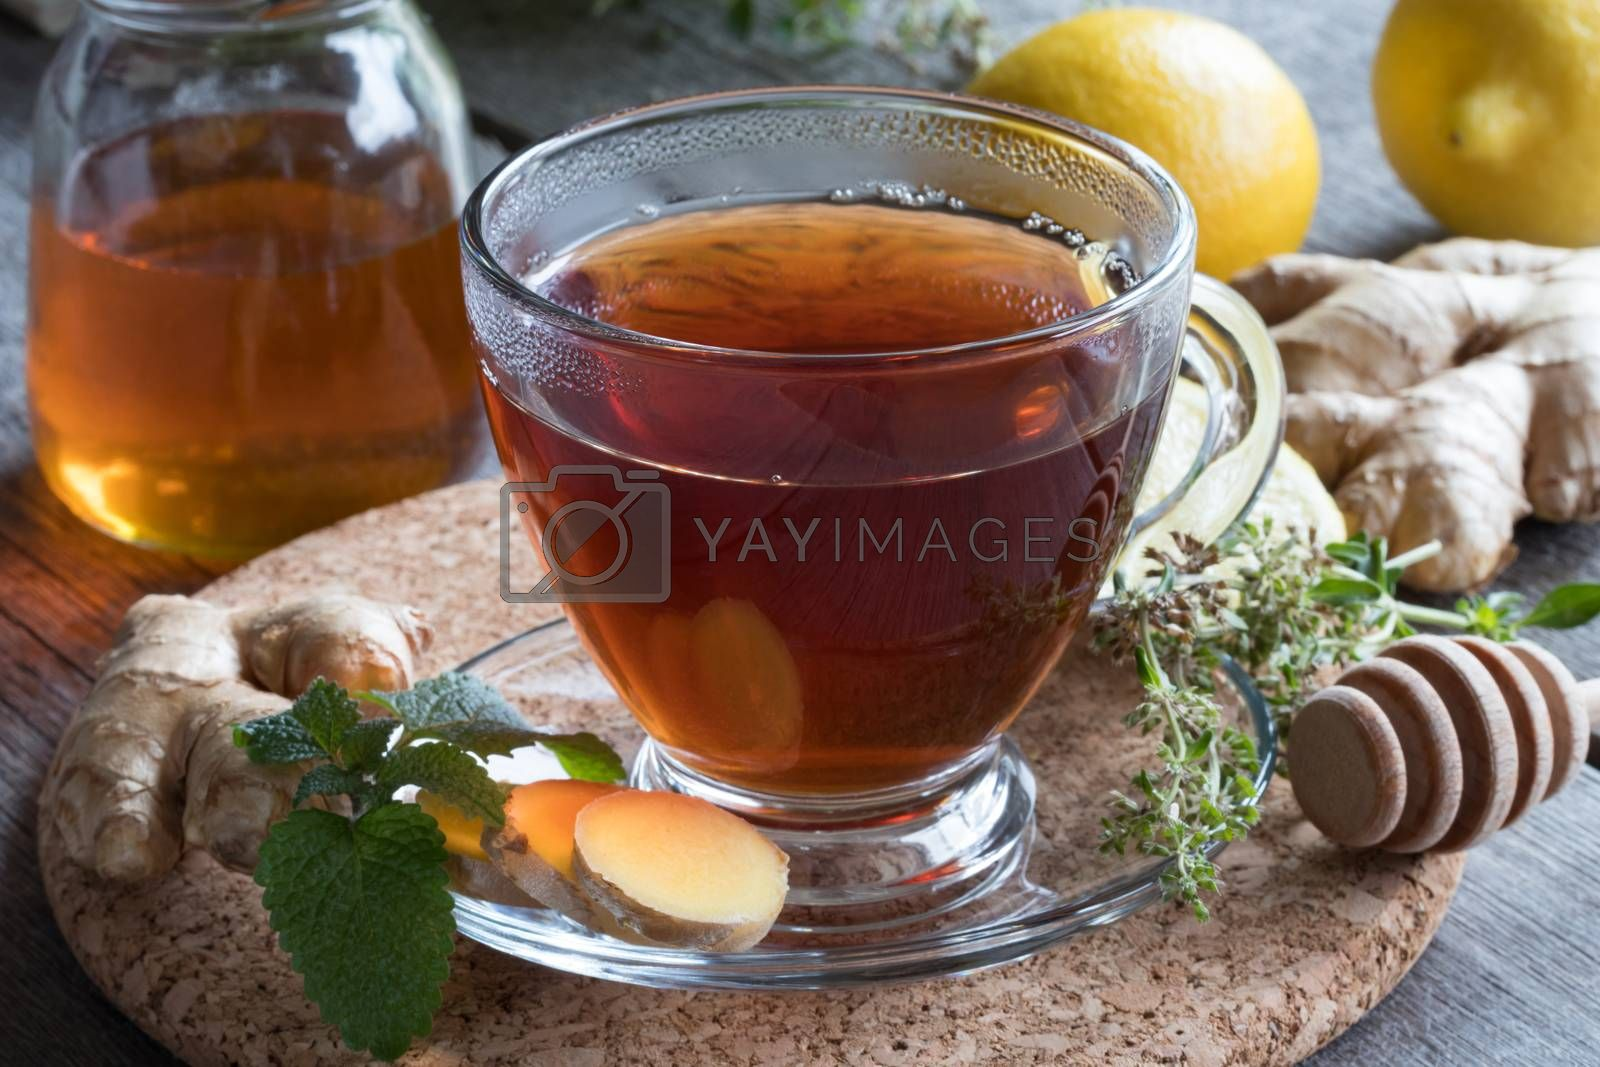 A cup of tea with ginger, melissa and creeping thyme, with lemons and a jar of honey in the background